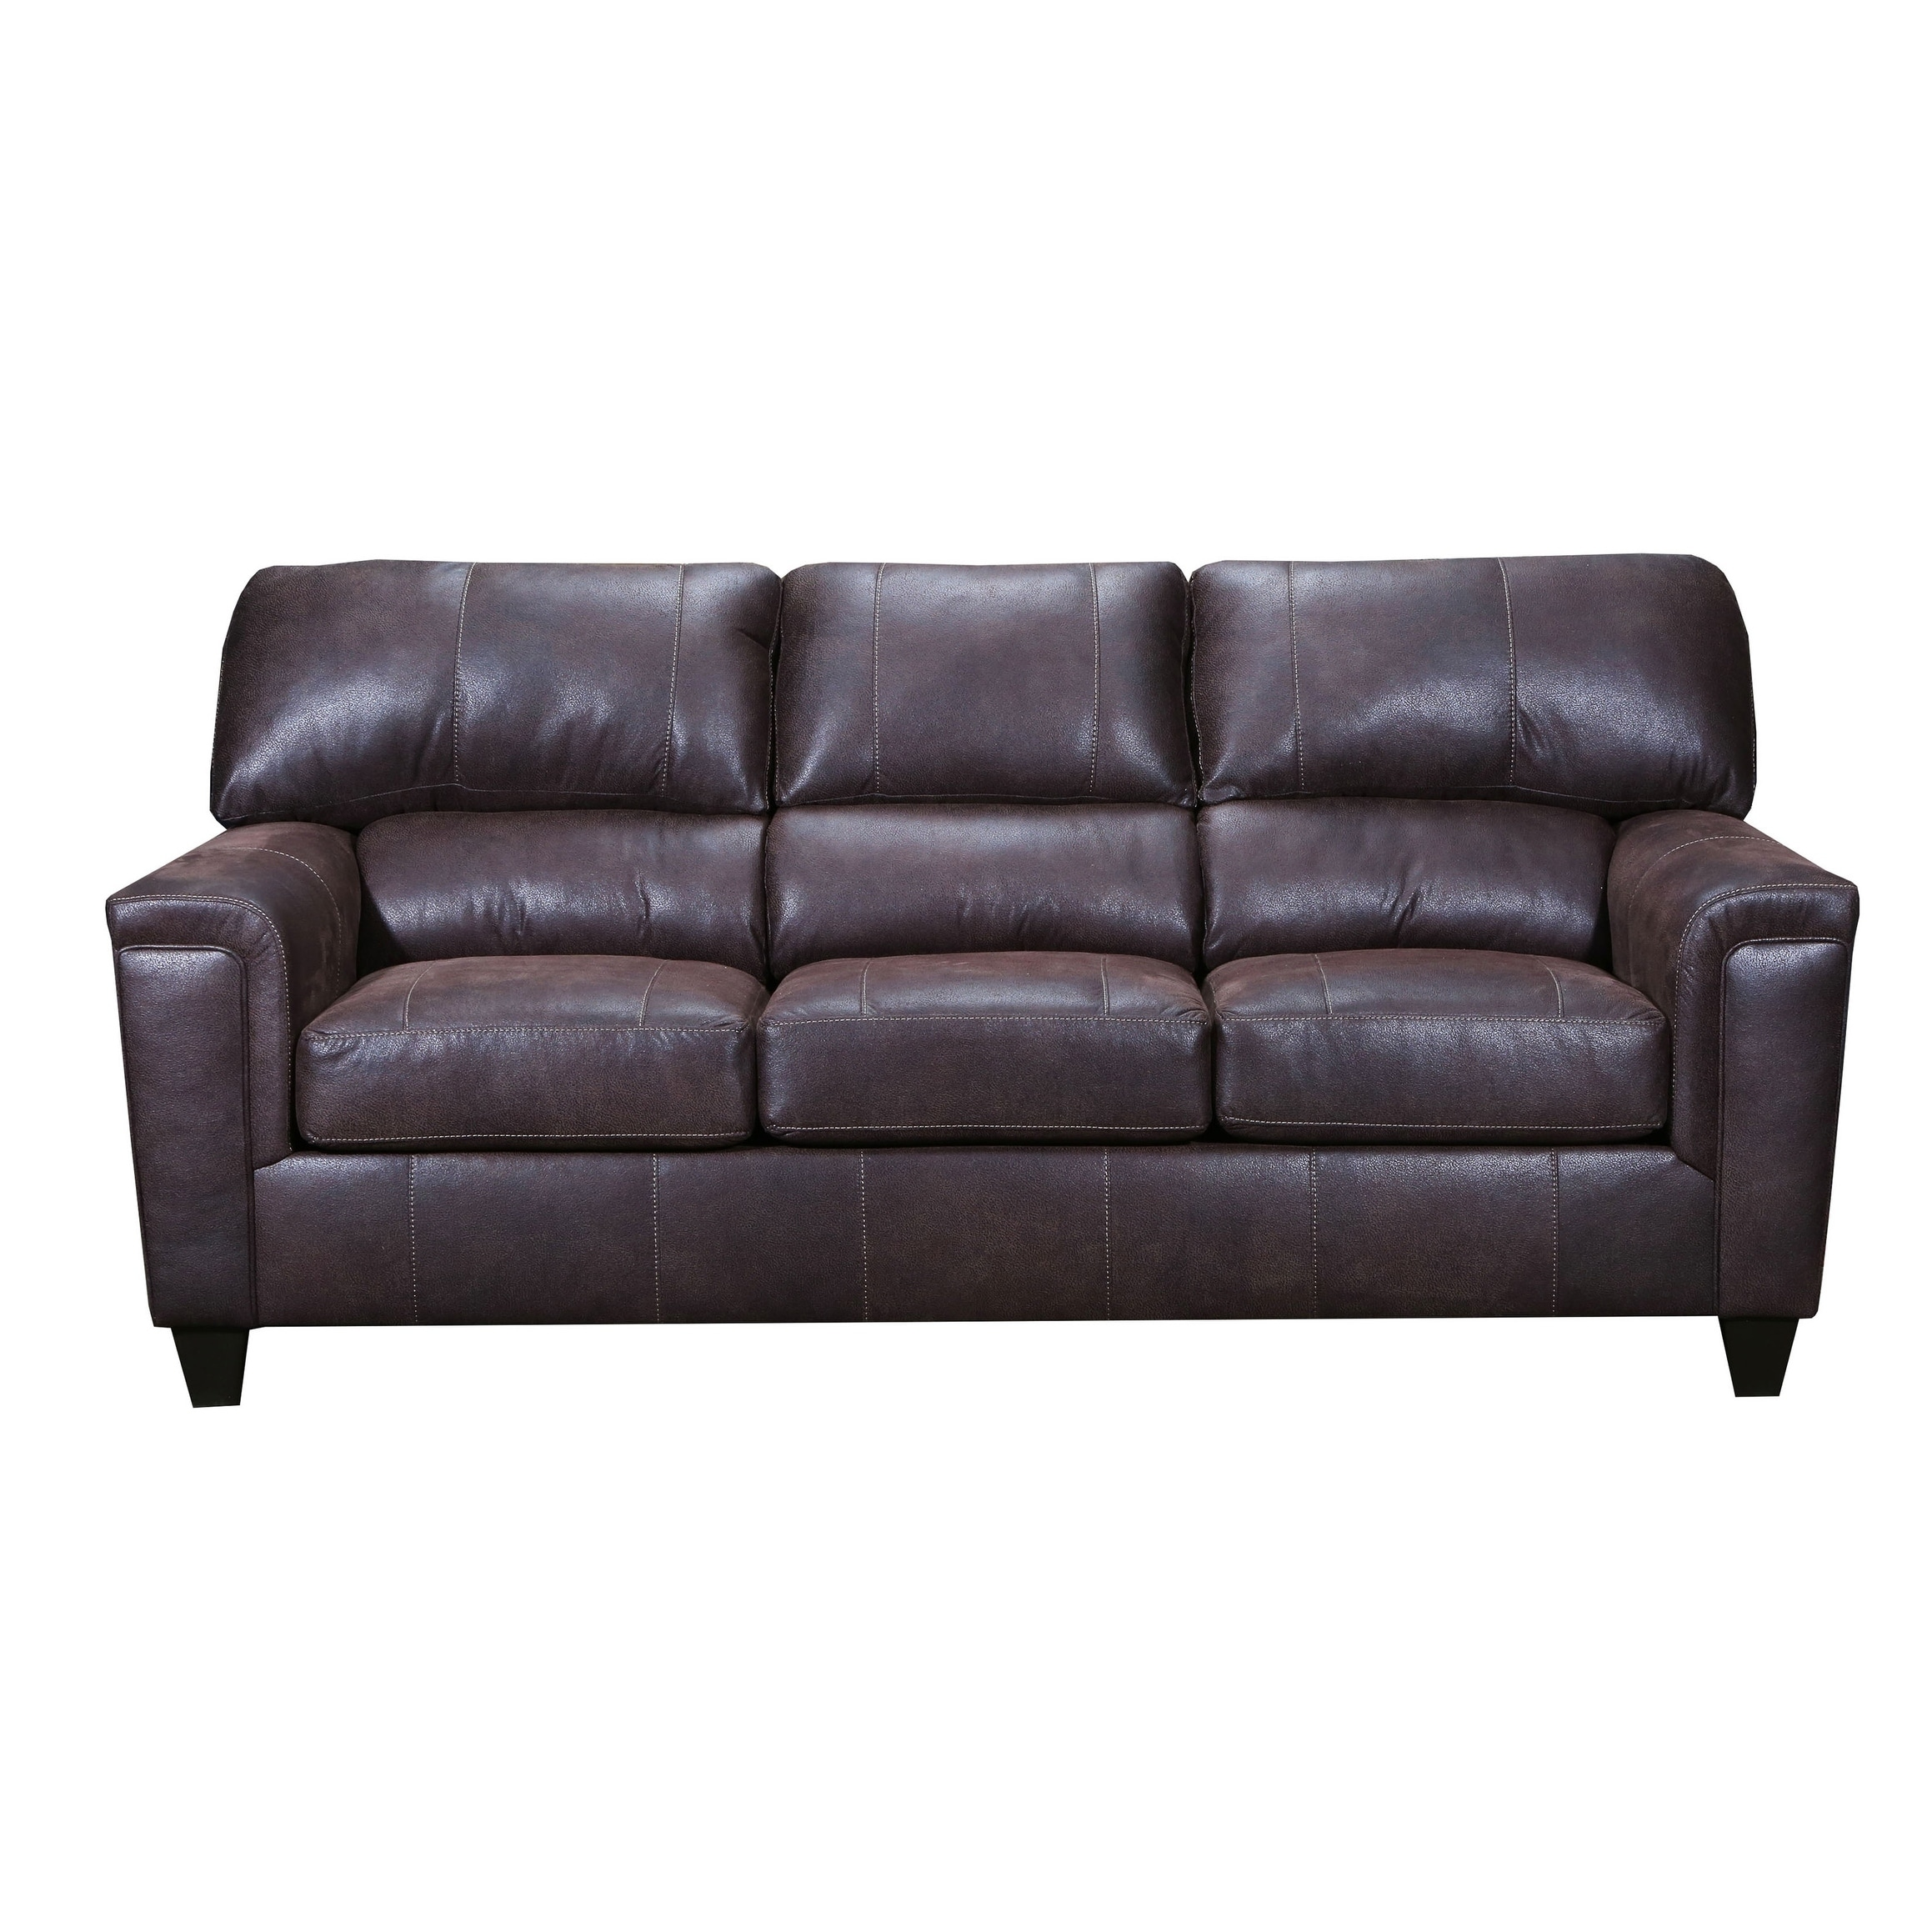 - Shop Moa Faux Leather Queen Sleeper Sofa - On Sale - Overstock